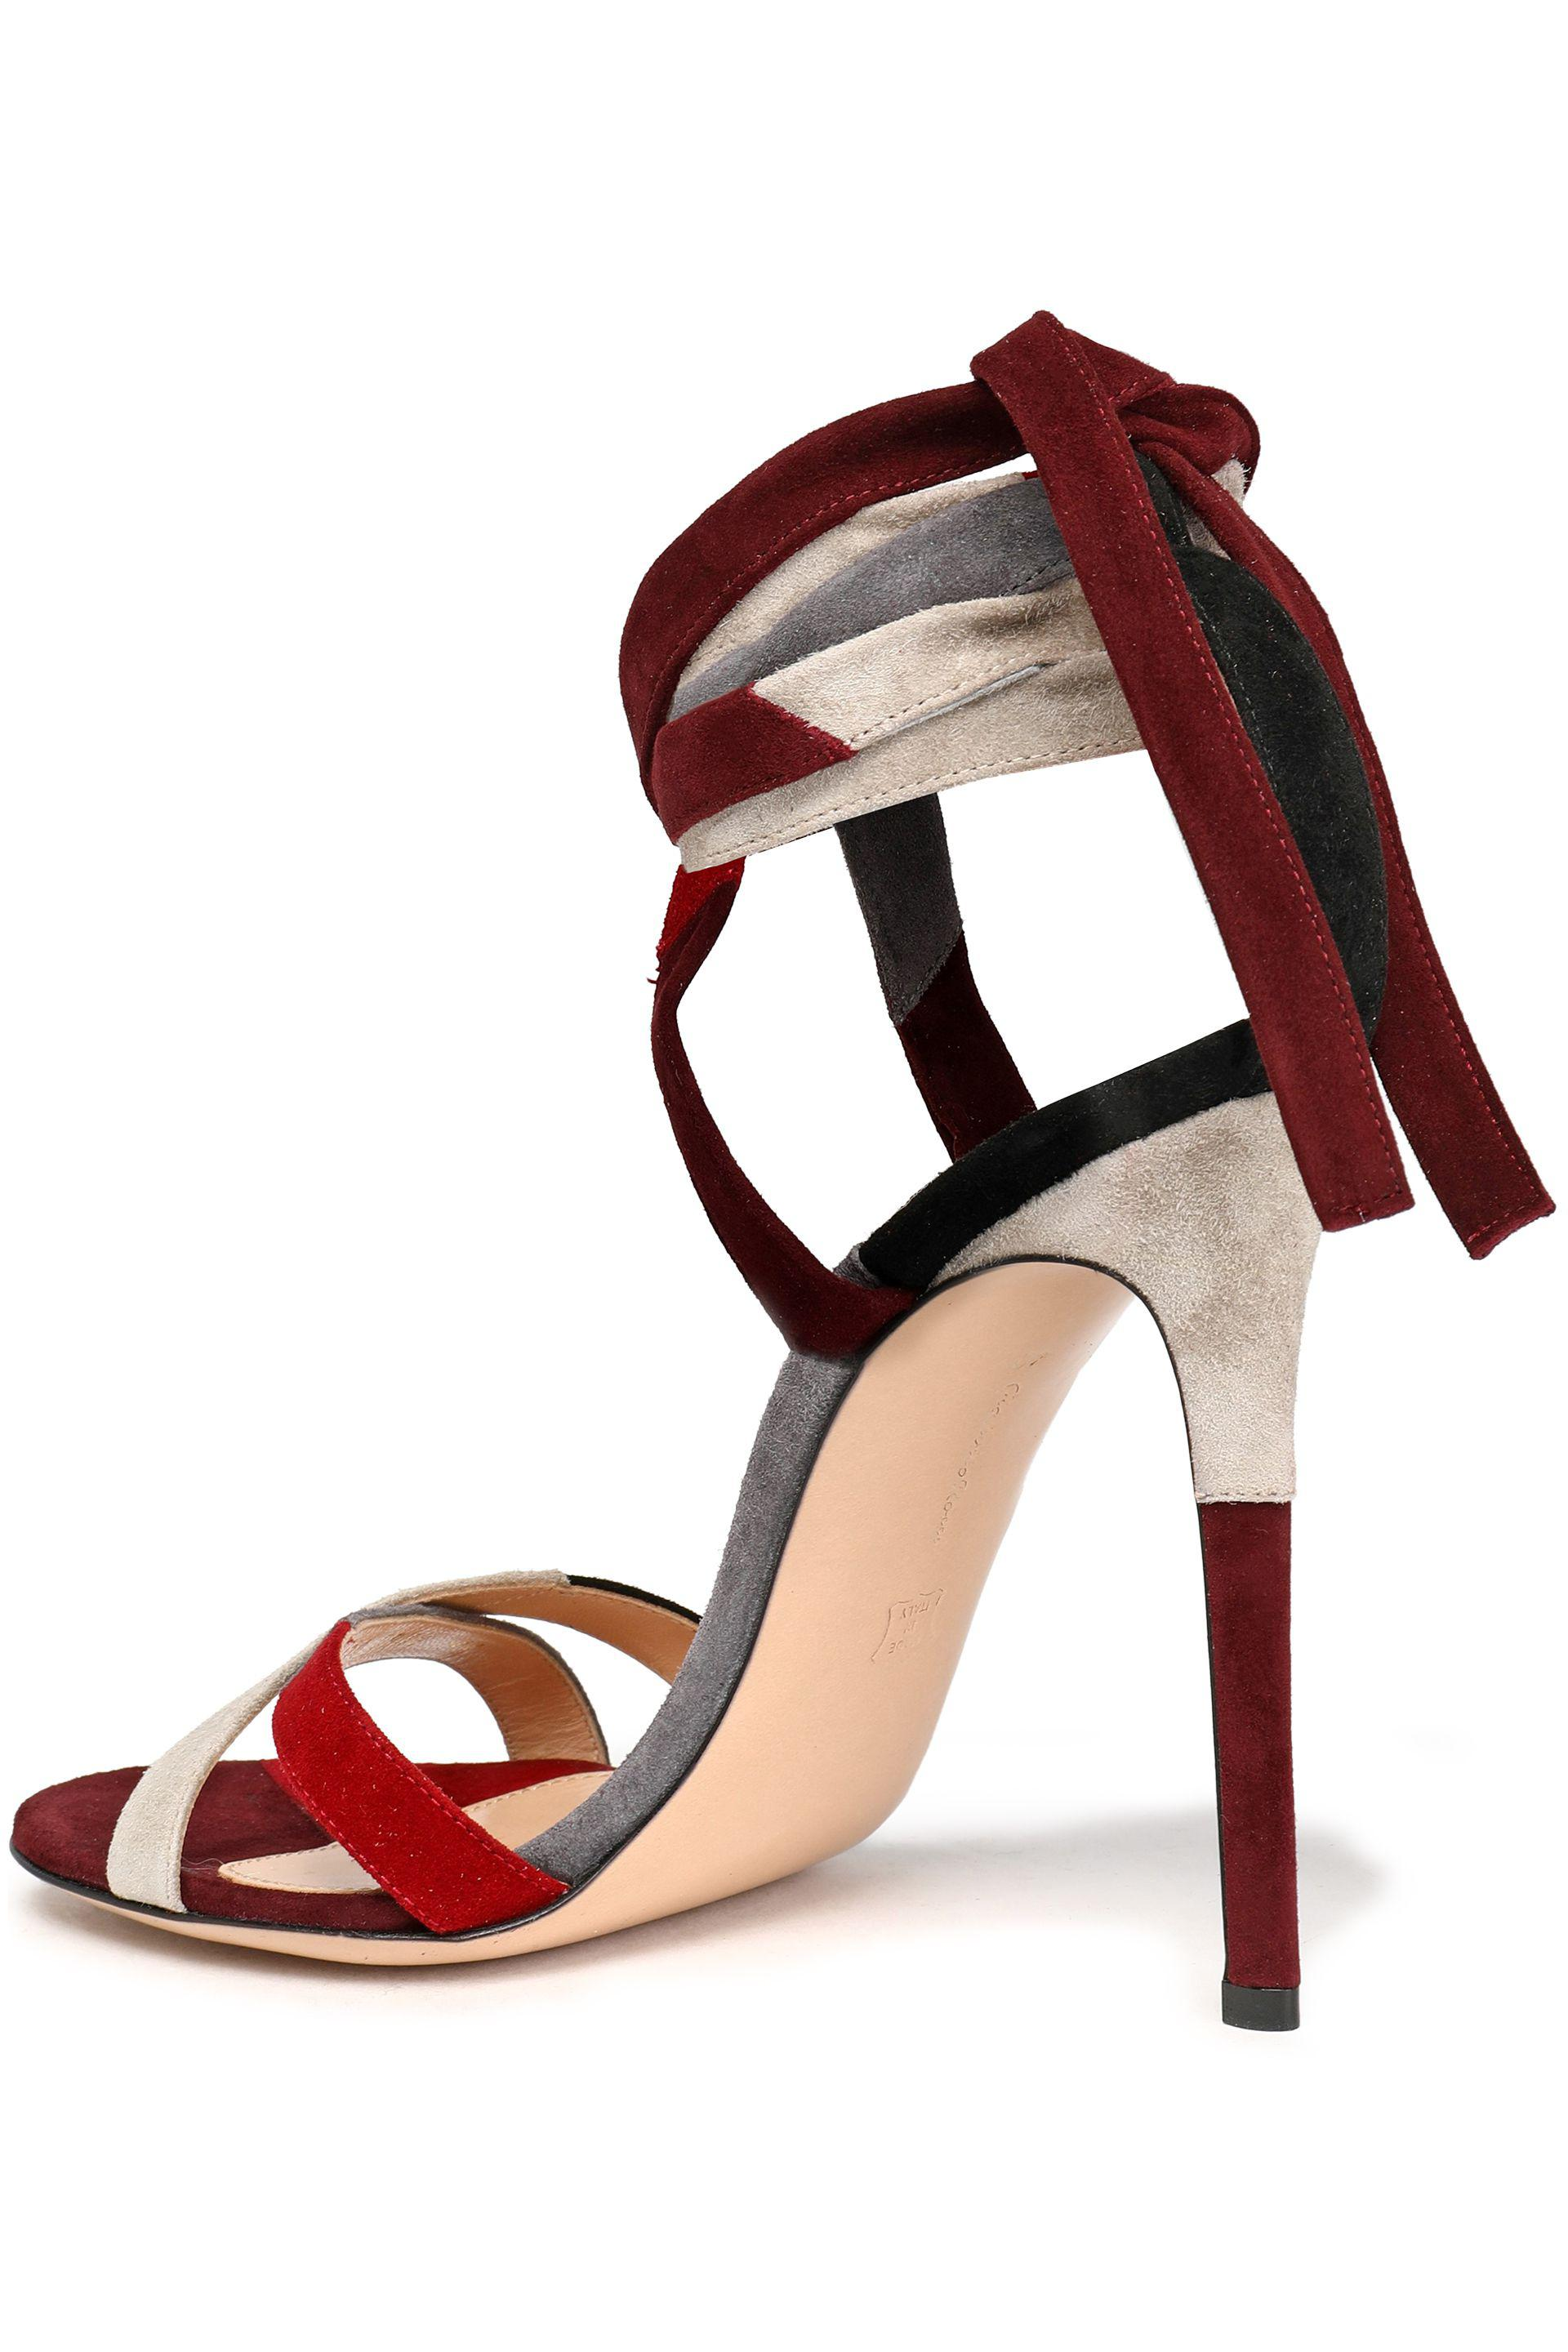 Camilla Elphick Woman Pcv-paneled Color-block Leather Sandals Multicolor Size 38.5 Camilla Elphick rPYga